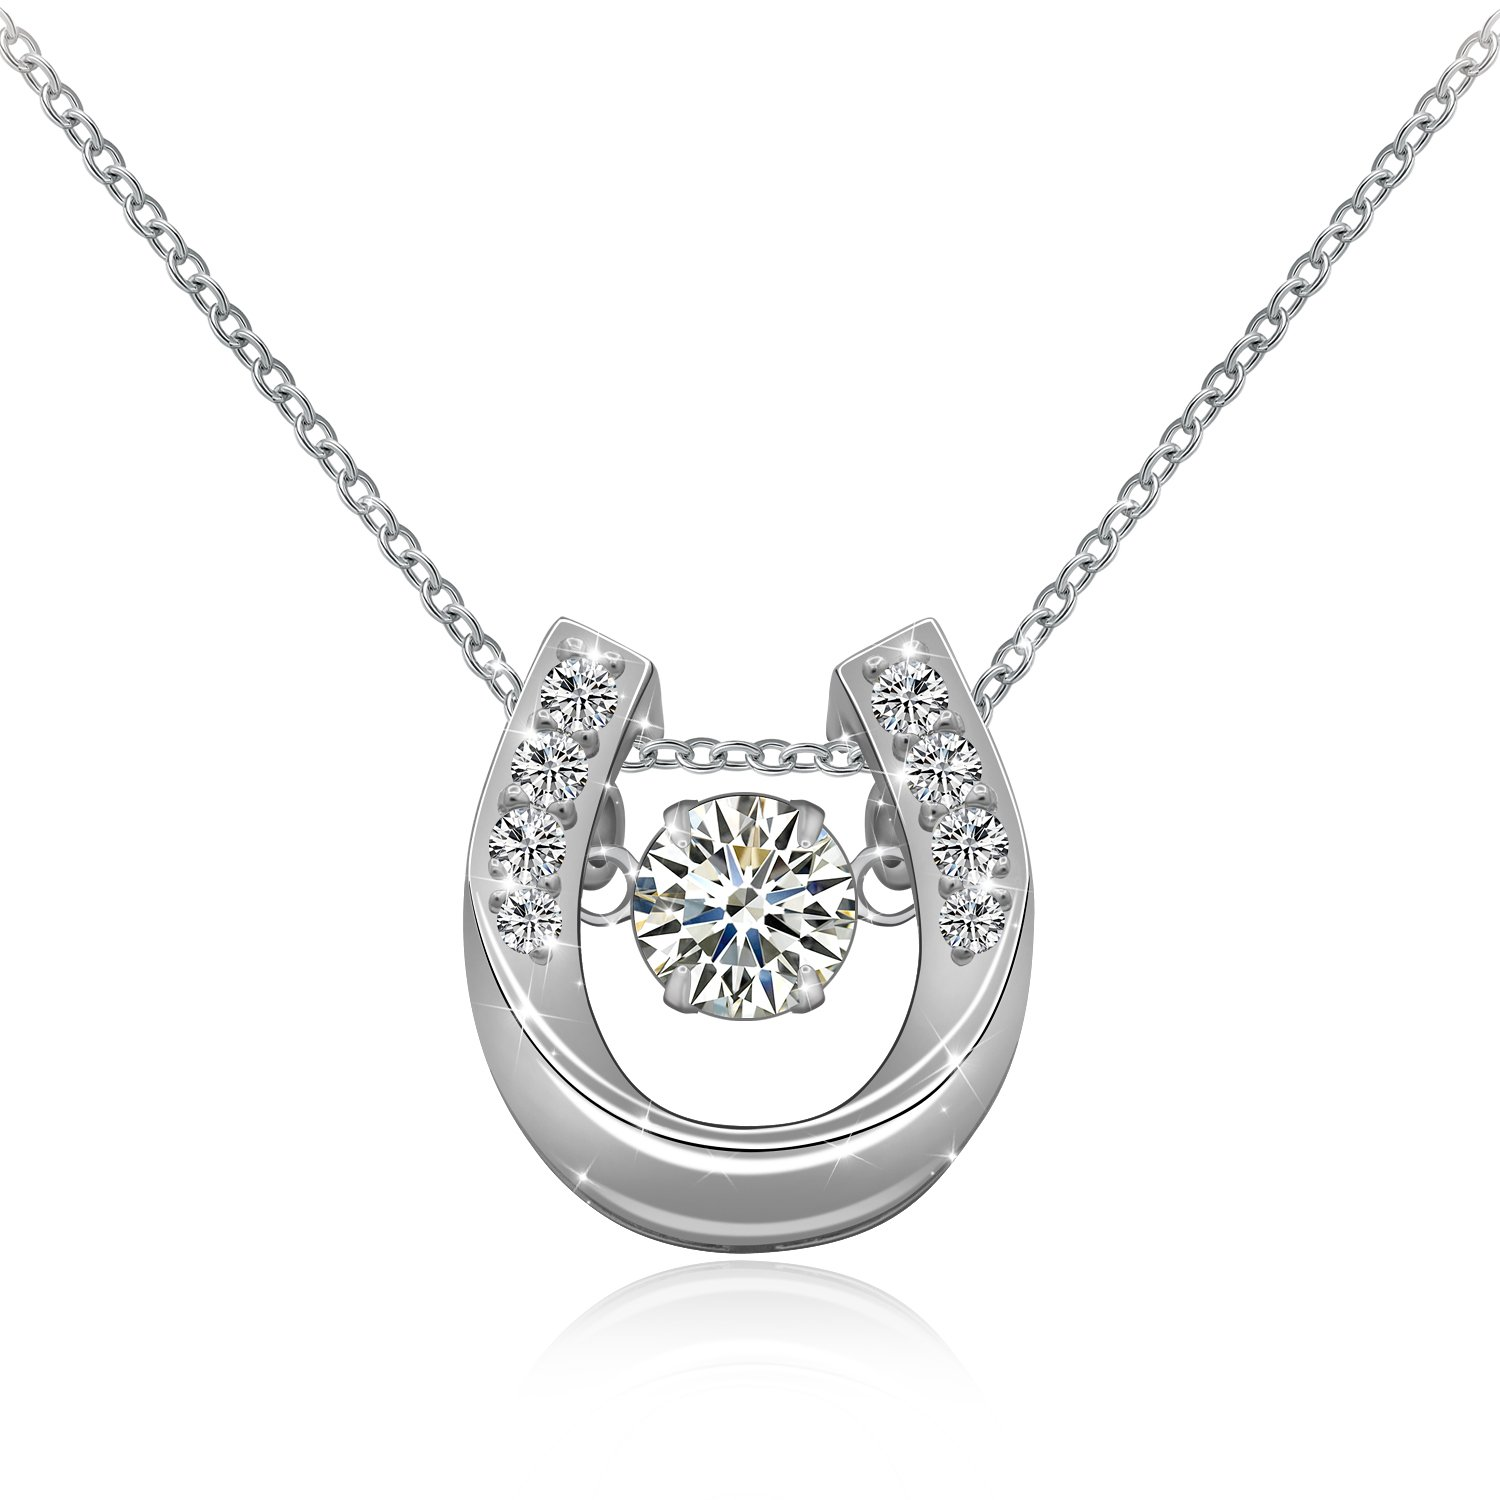 ACJNA 925 Sterling Silver Small Horseshoe with CZ Flexibly U Pendant Necklace,Rolo Chain 18''